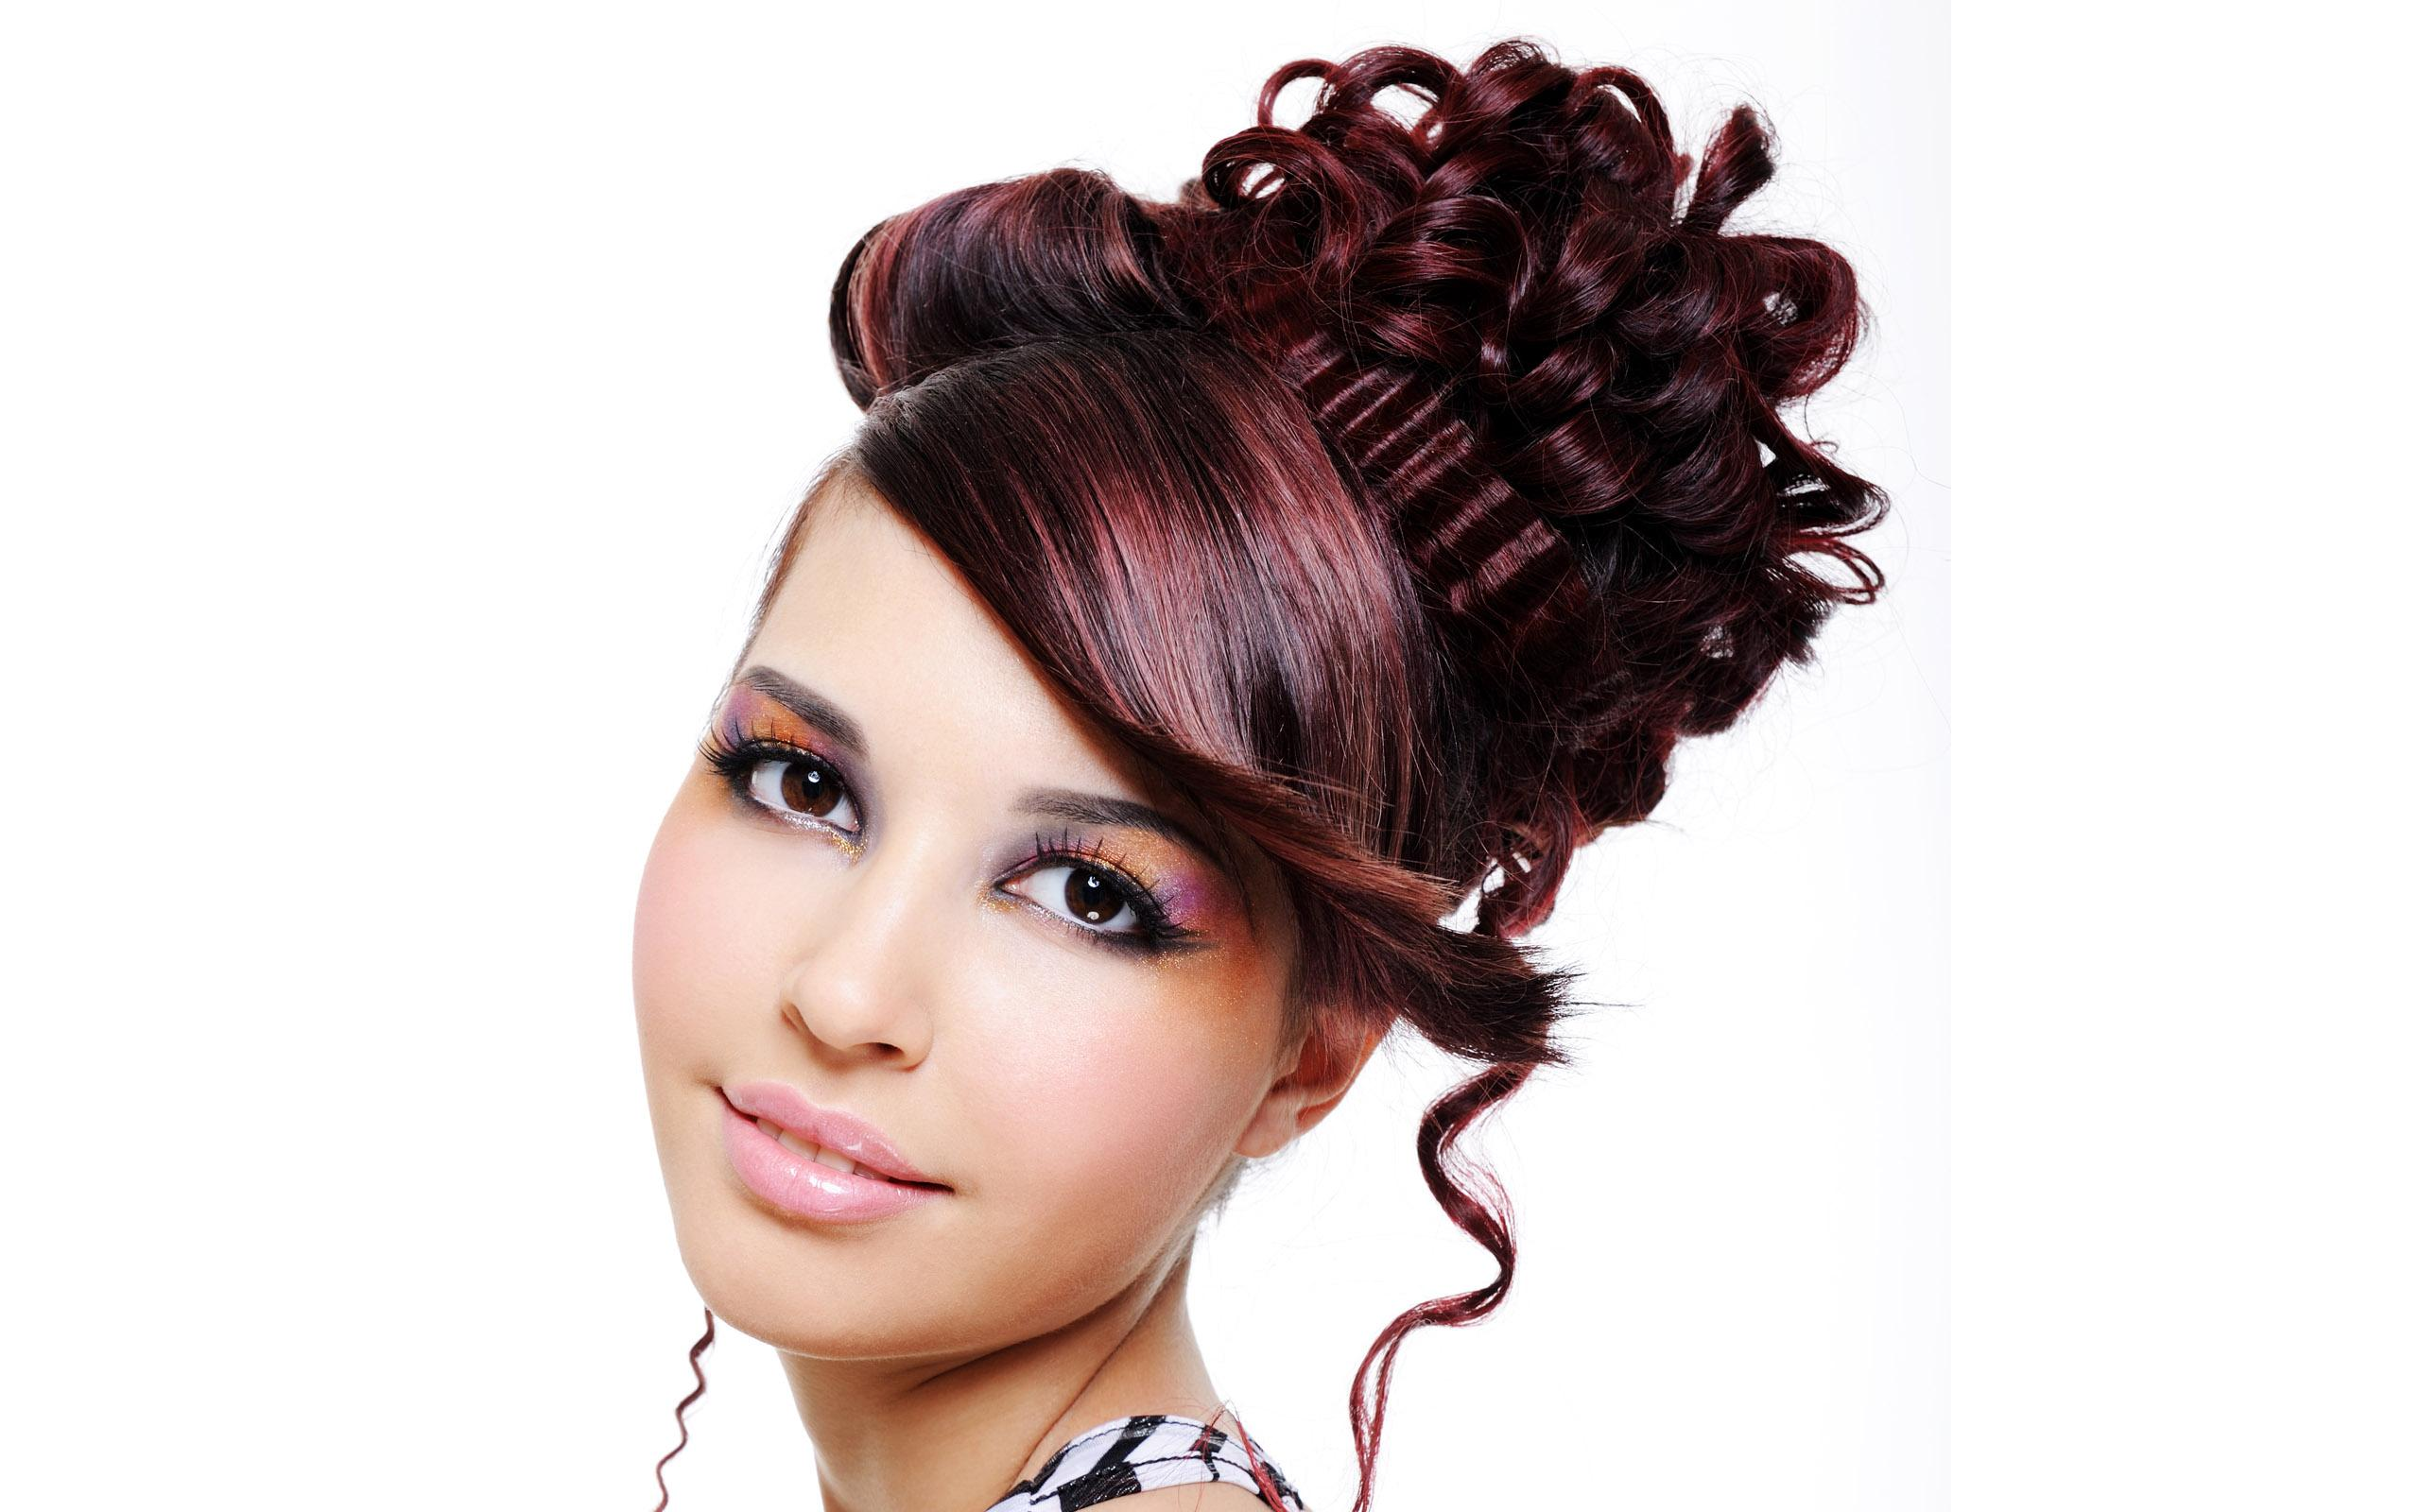 Female Hairstyles Images Hair Styles